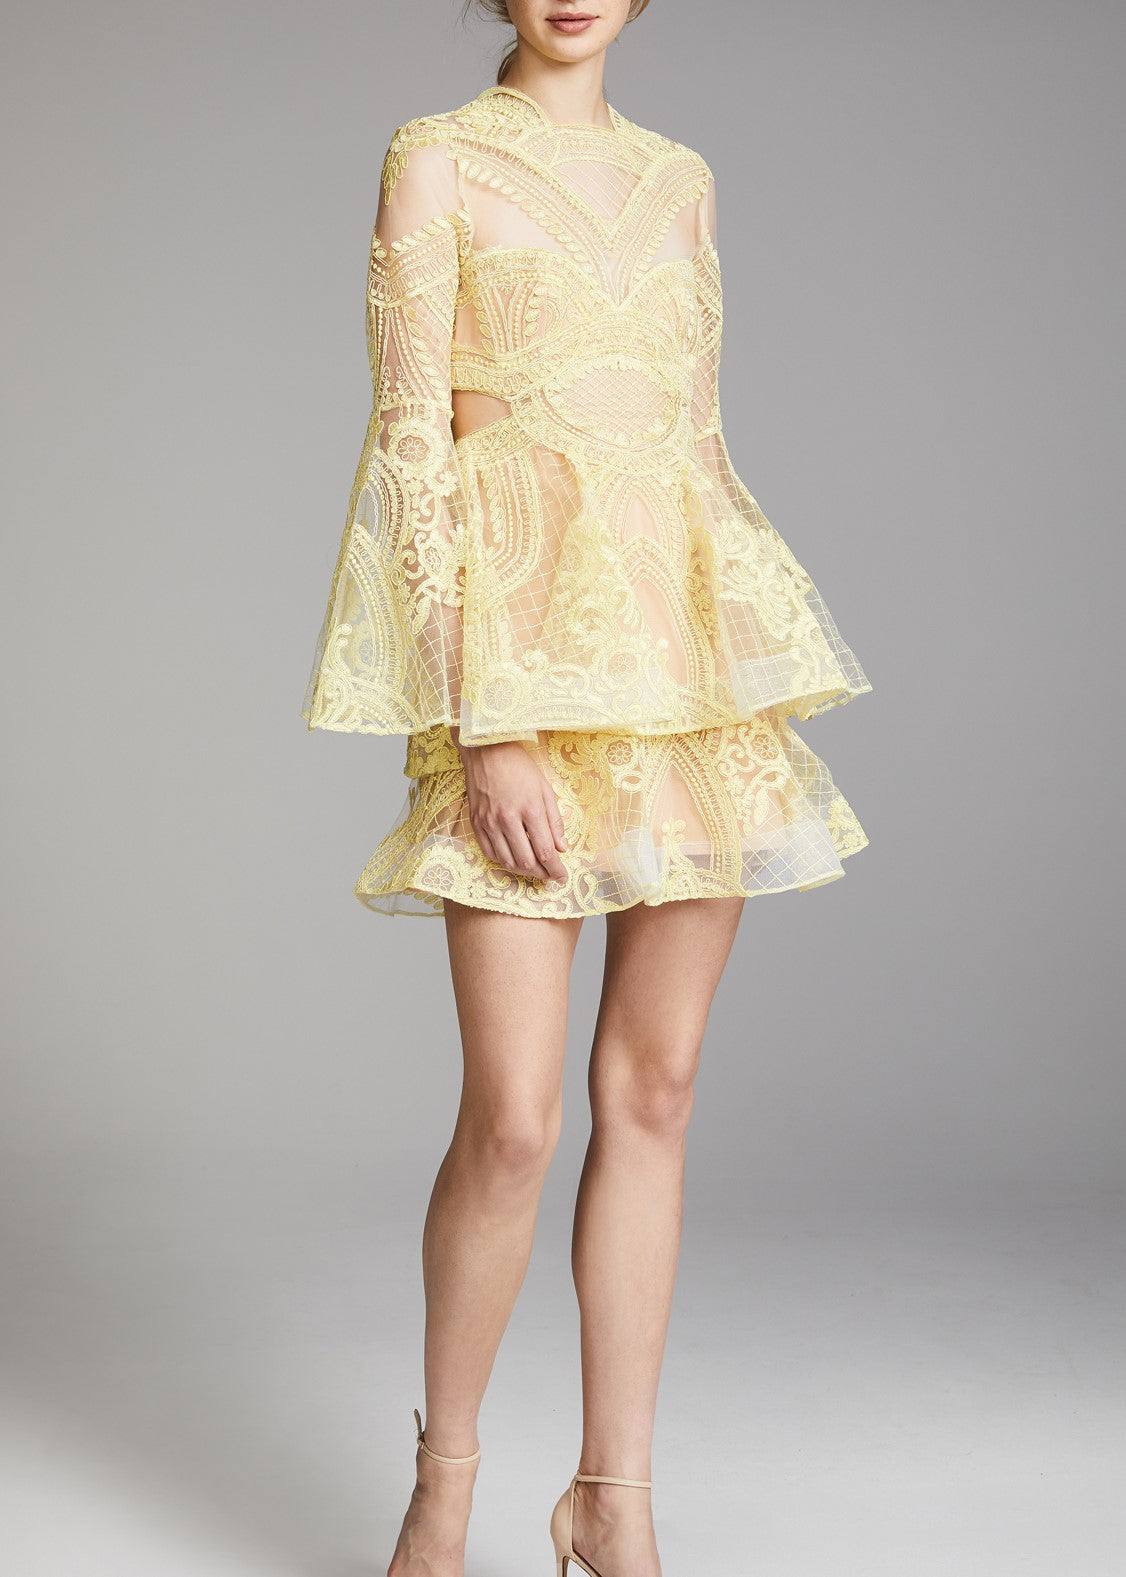 Thurley Chameleon dress lemon